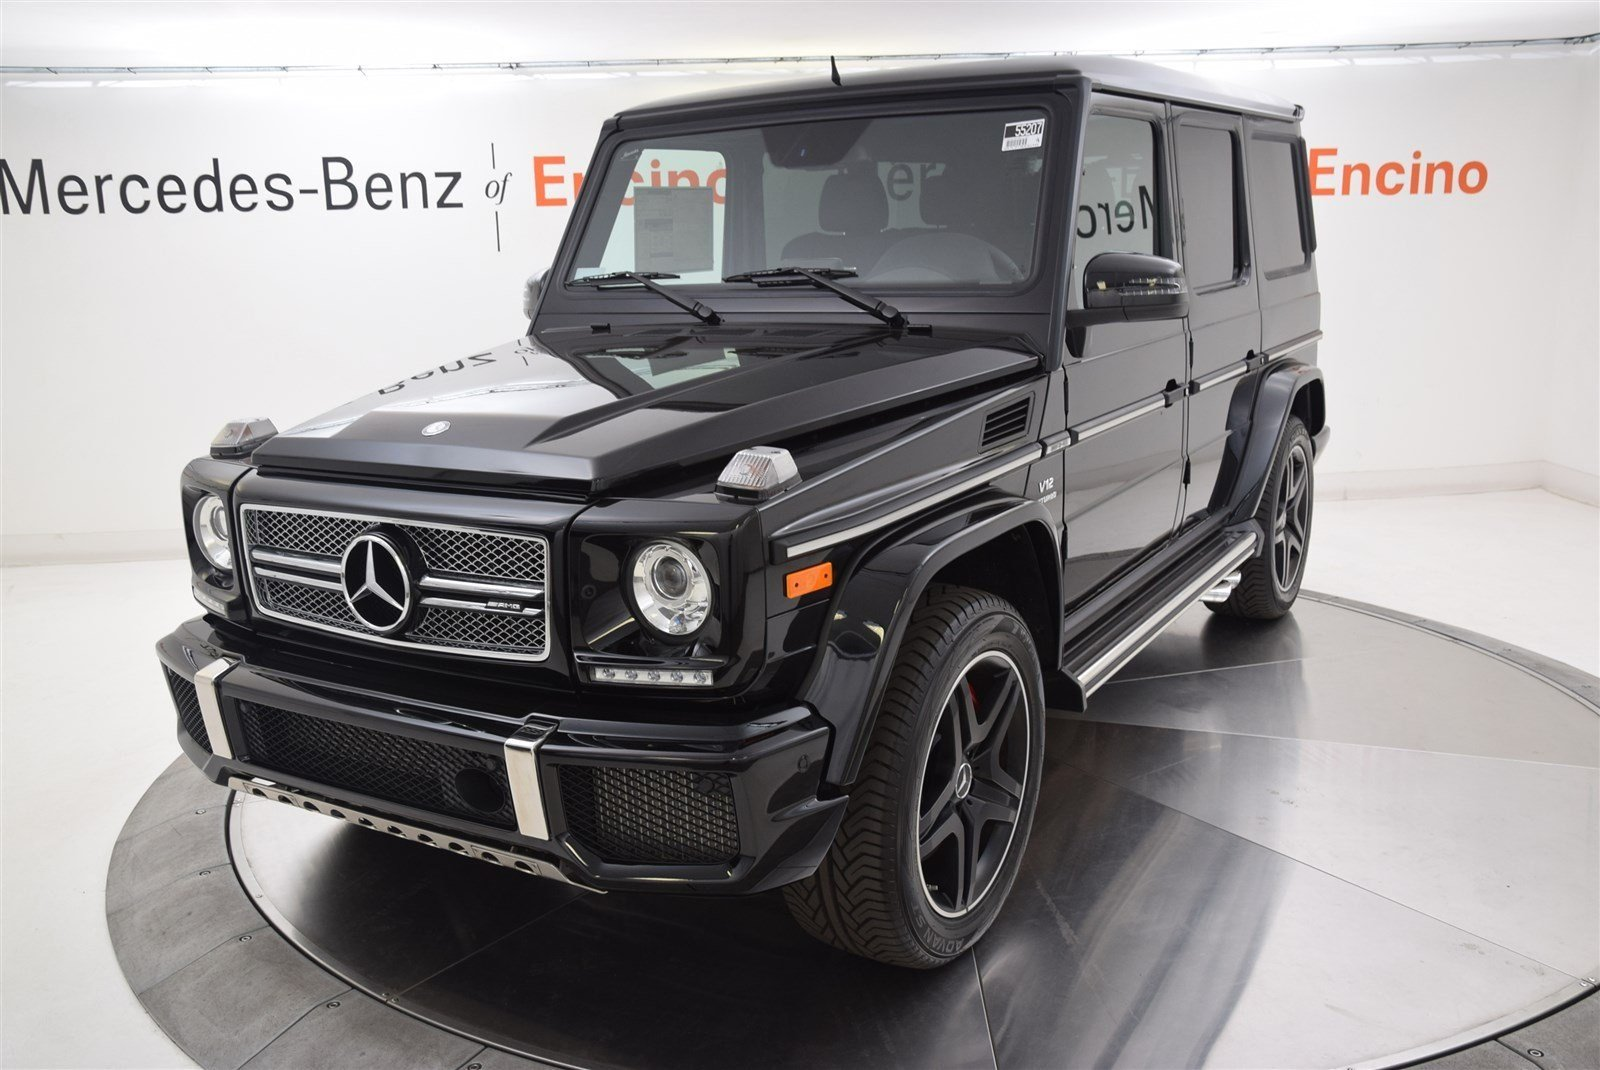 Mercedes Suv 2016 New 2016 Mercedes Benz G Class G 65 Amg Suv Suv In Encino